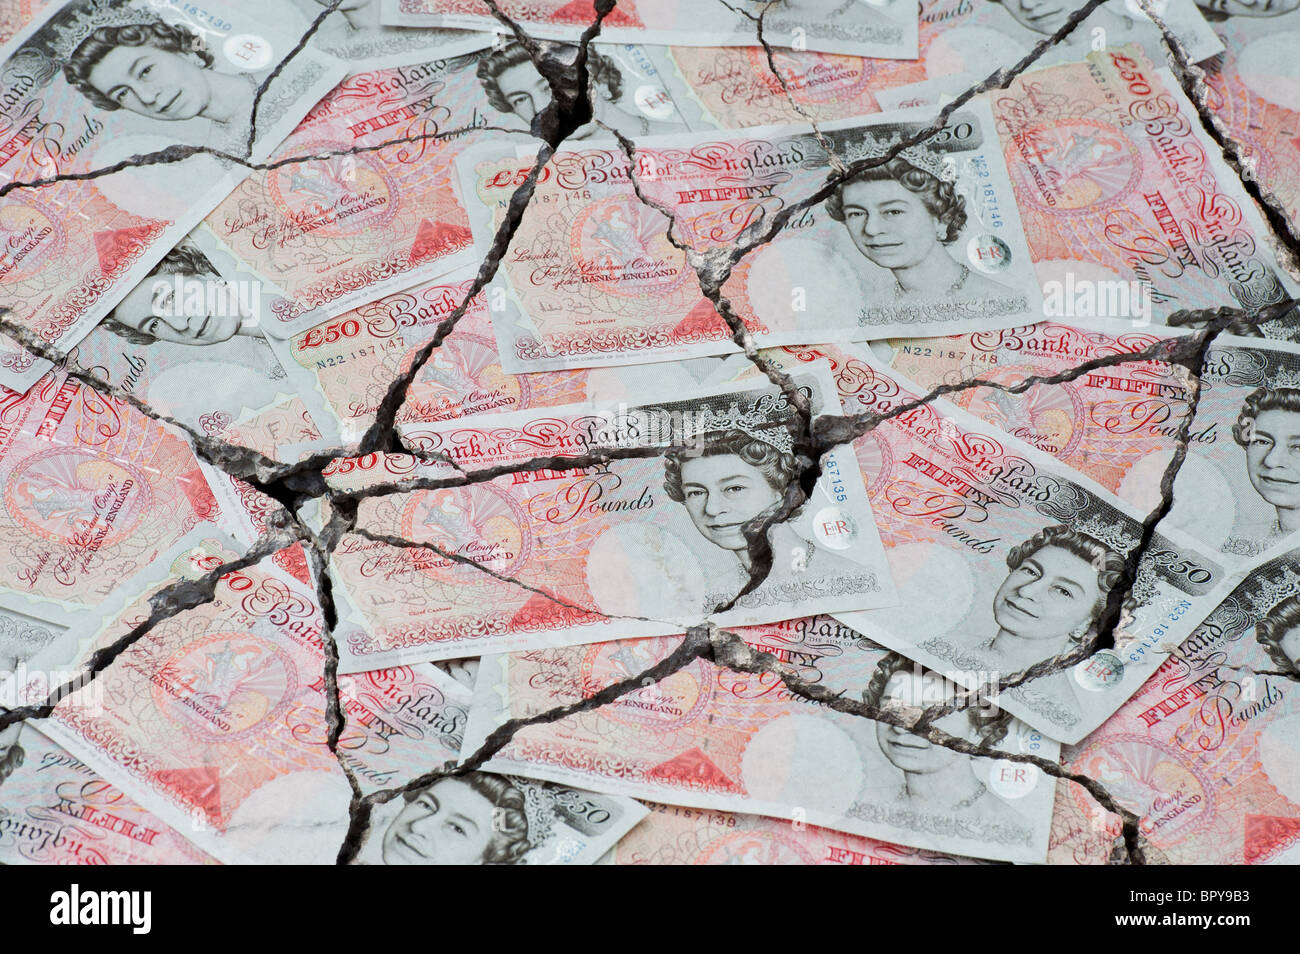 Cracked fifty pound notes concept to represent an economic crisis - Stock Image